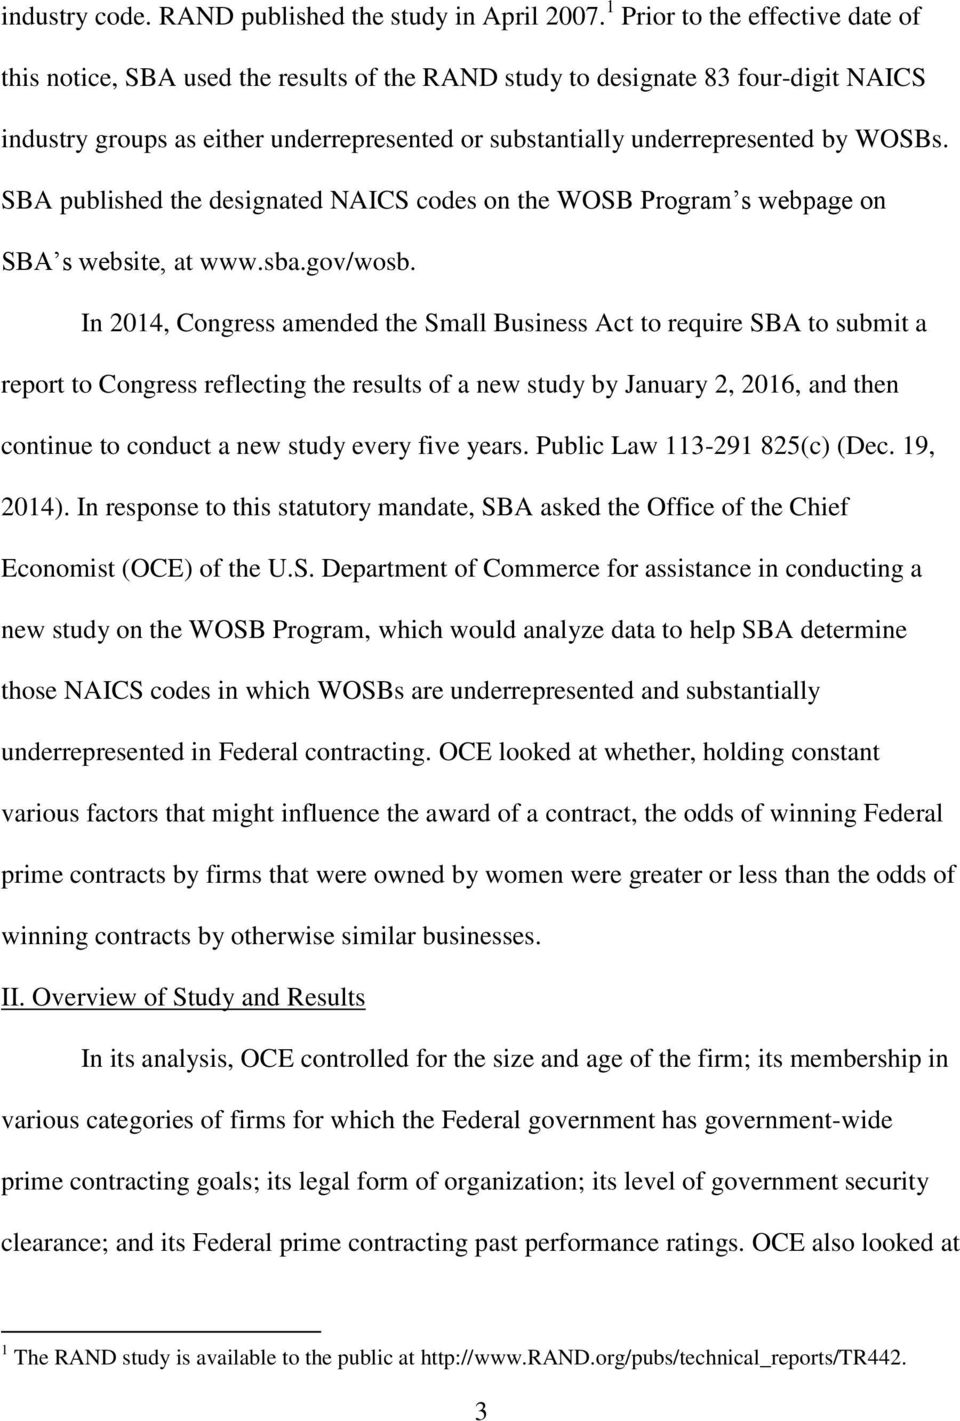 WOSBs. SBA published the designated NAICS codes on the WOSB Program s webpage on SBA s website, at www.sba.gov/wosb.